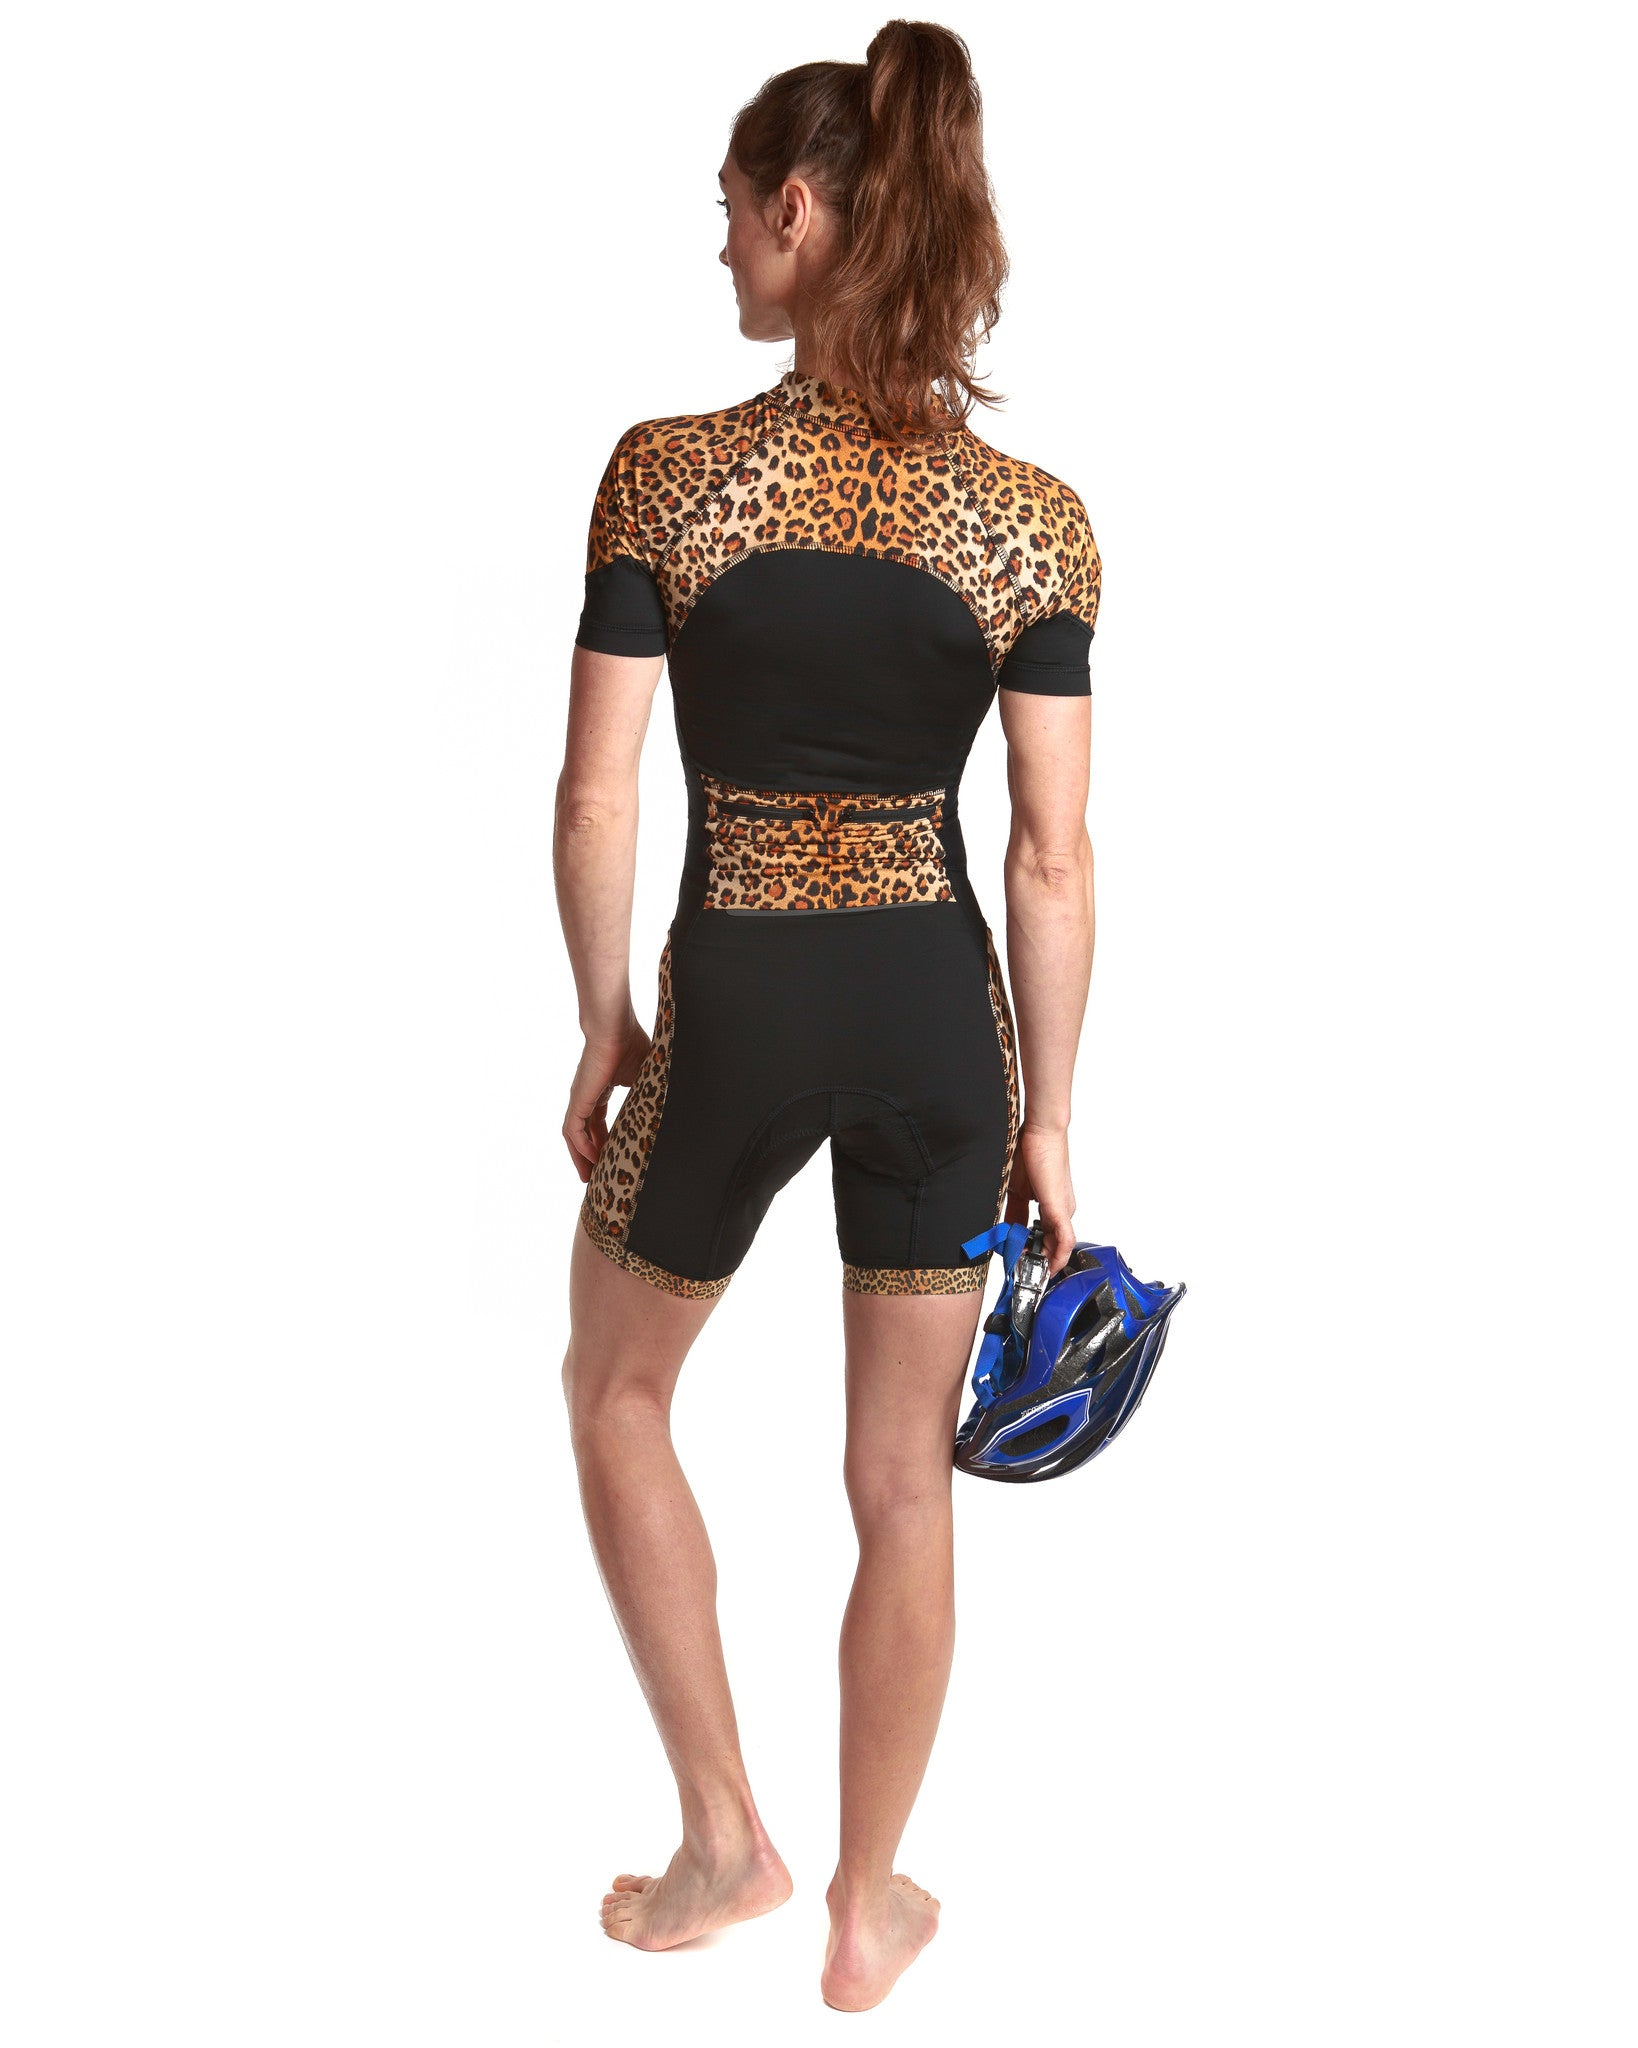 LPRD Black with Leopard Panel Cycling Skinsuit | Back View